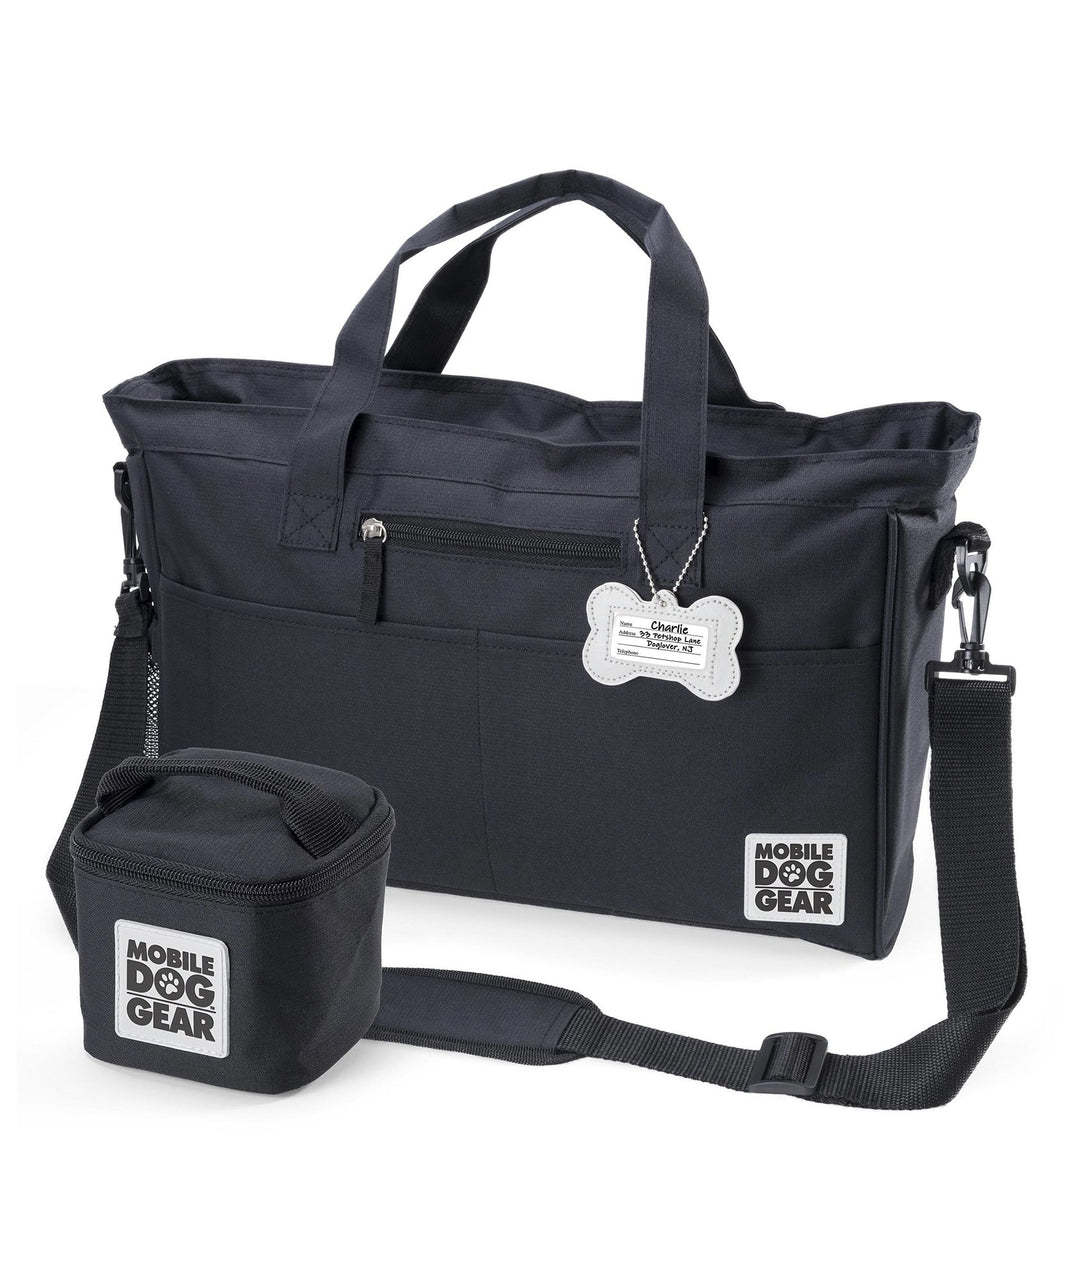 Mobile Dog Gear Day Away® Tote Bag